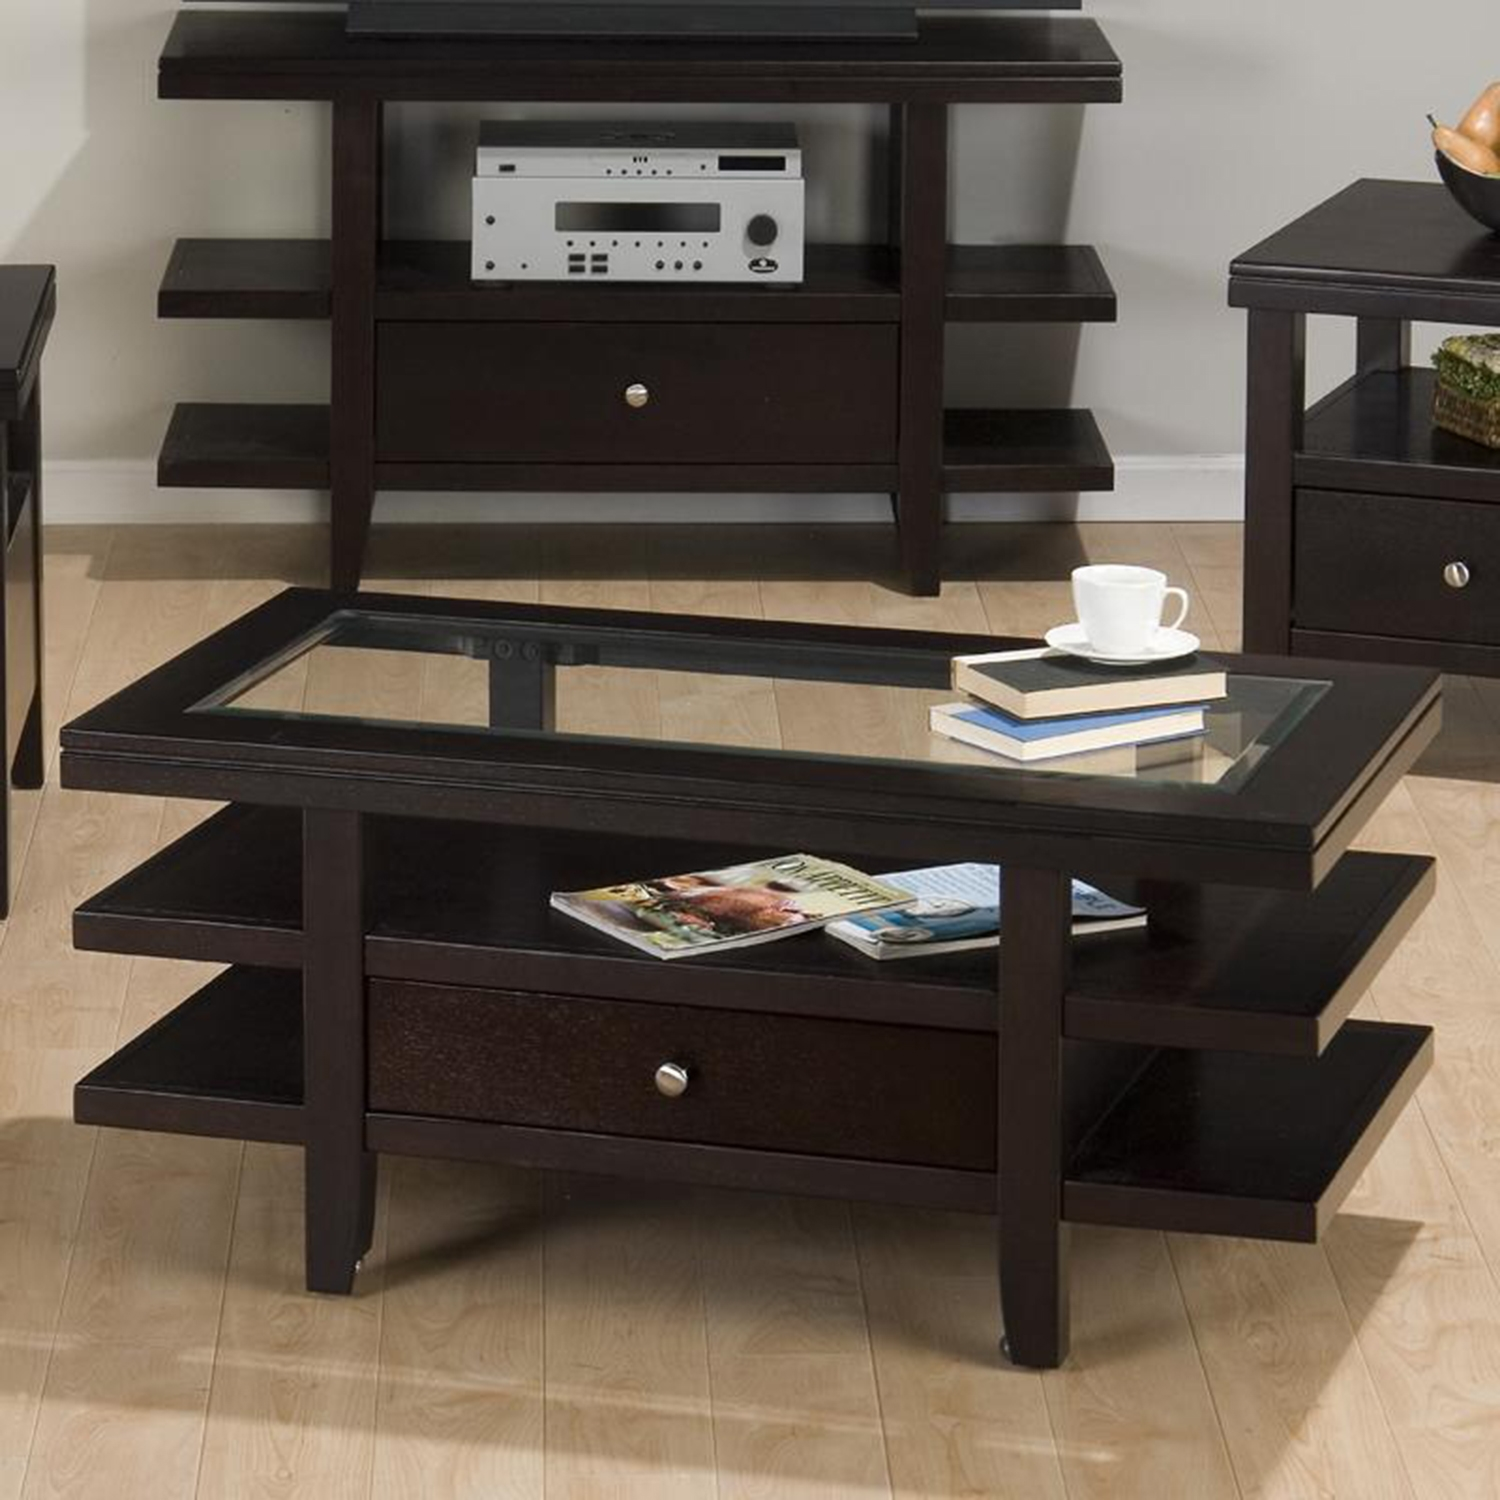 Marlon Rectangle Cocktail Table - 3 Tier Shelves, Wenge - JOFR-091-1